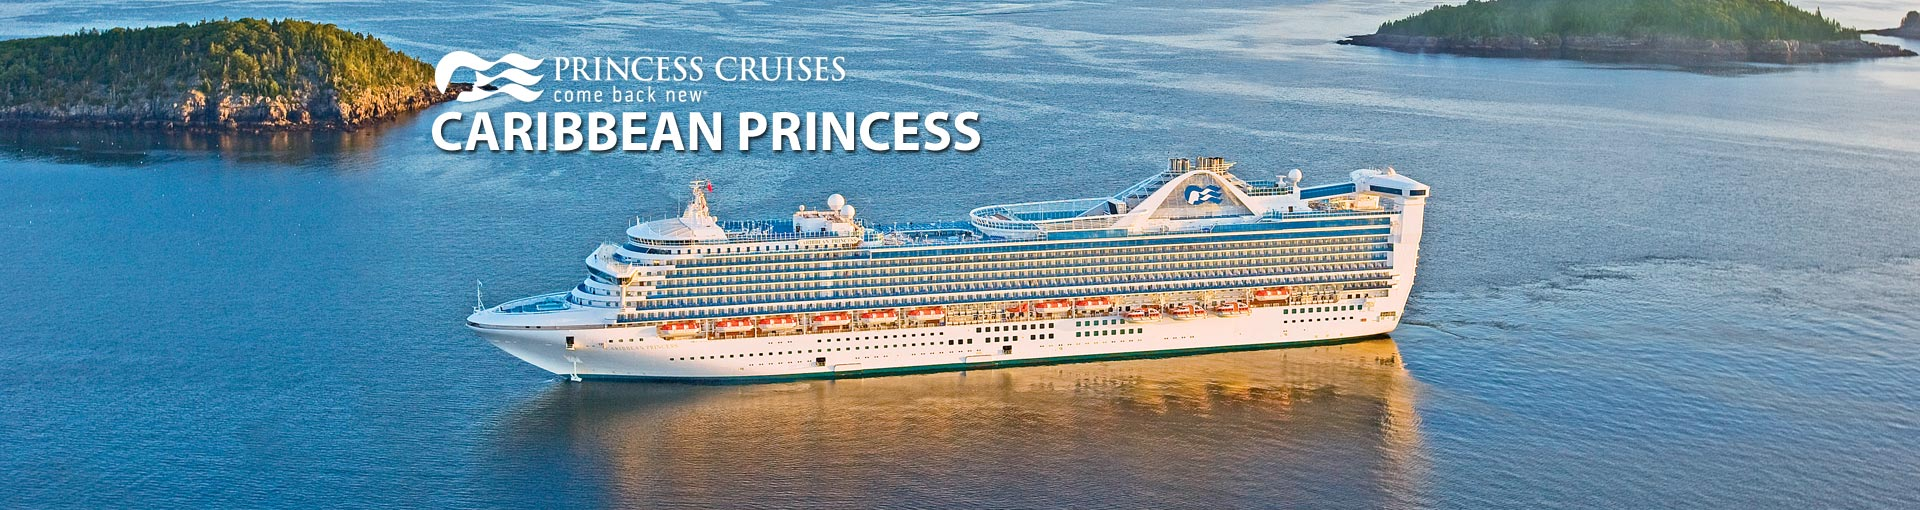 Caribbean Princess Cruise Ship And Caribbean Princess - Best small cruise ships caribbean